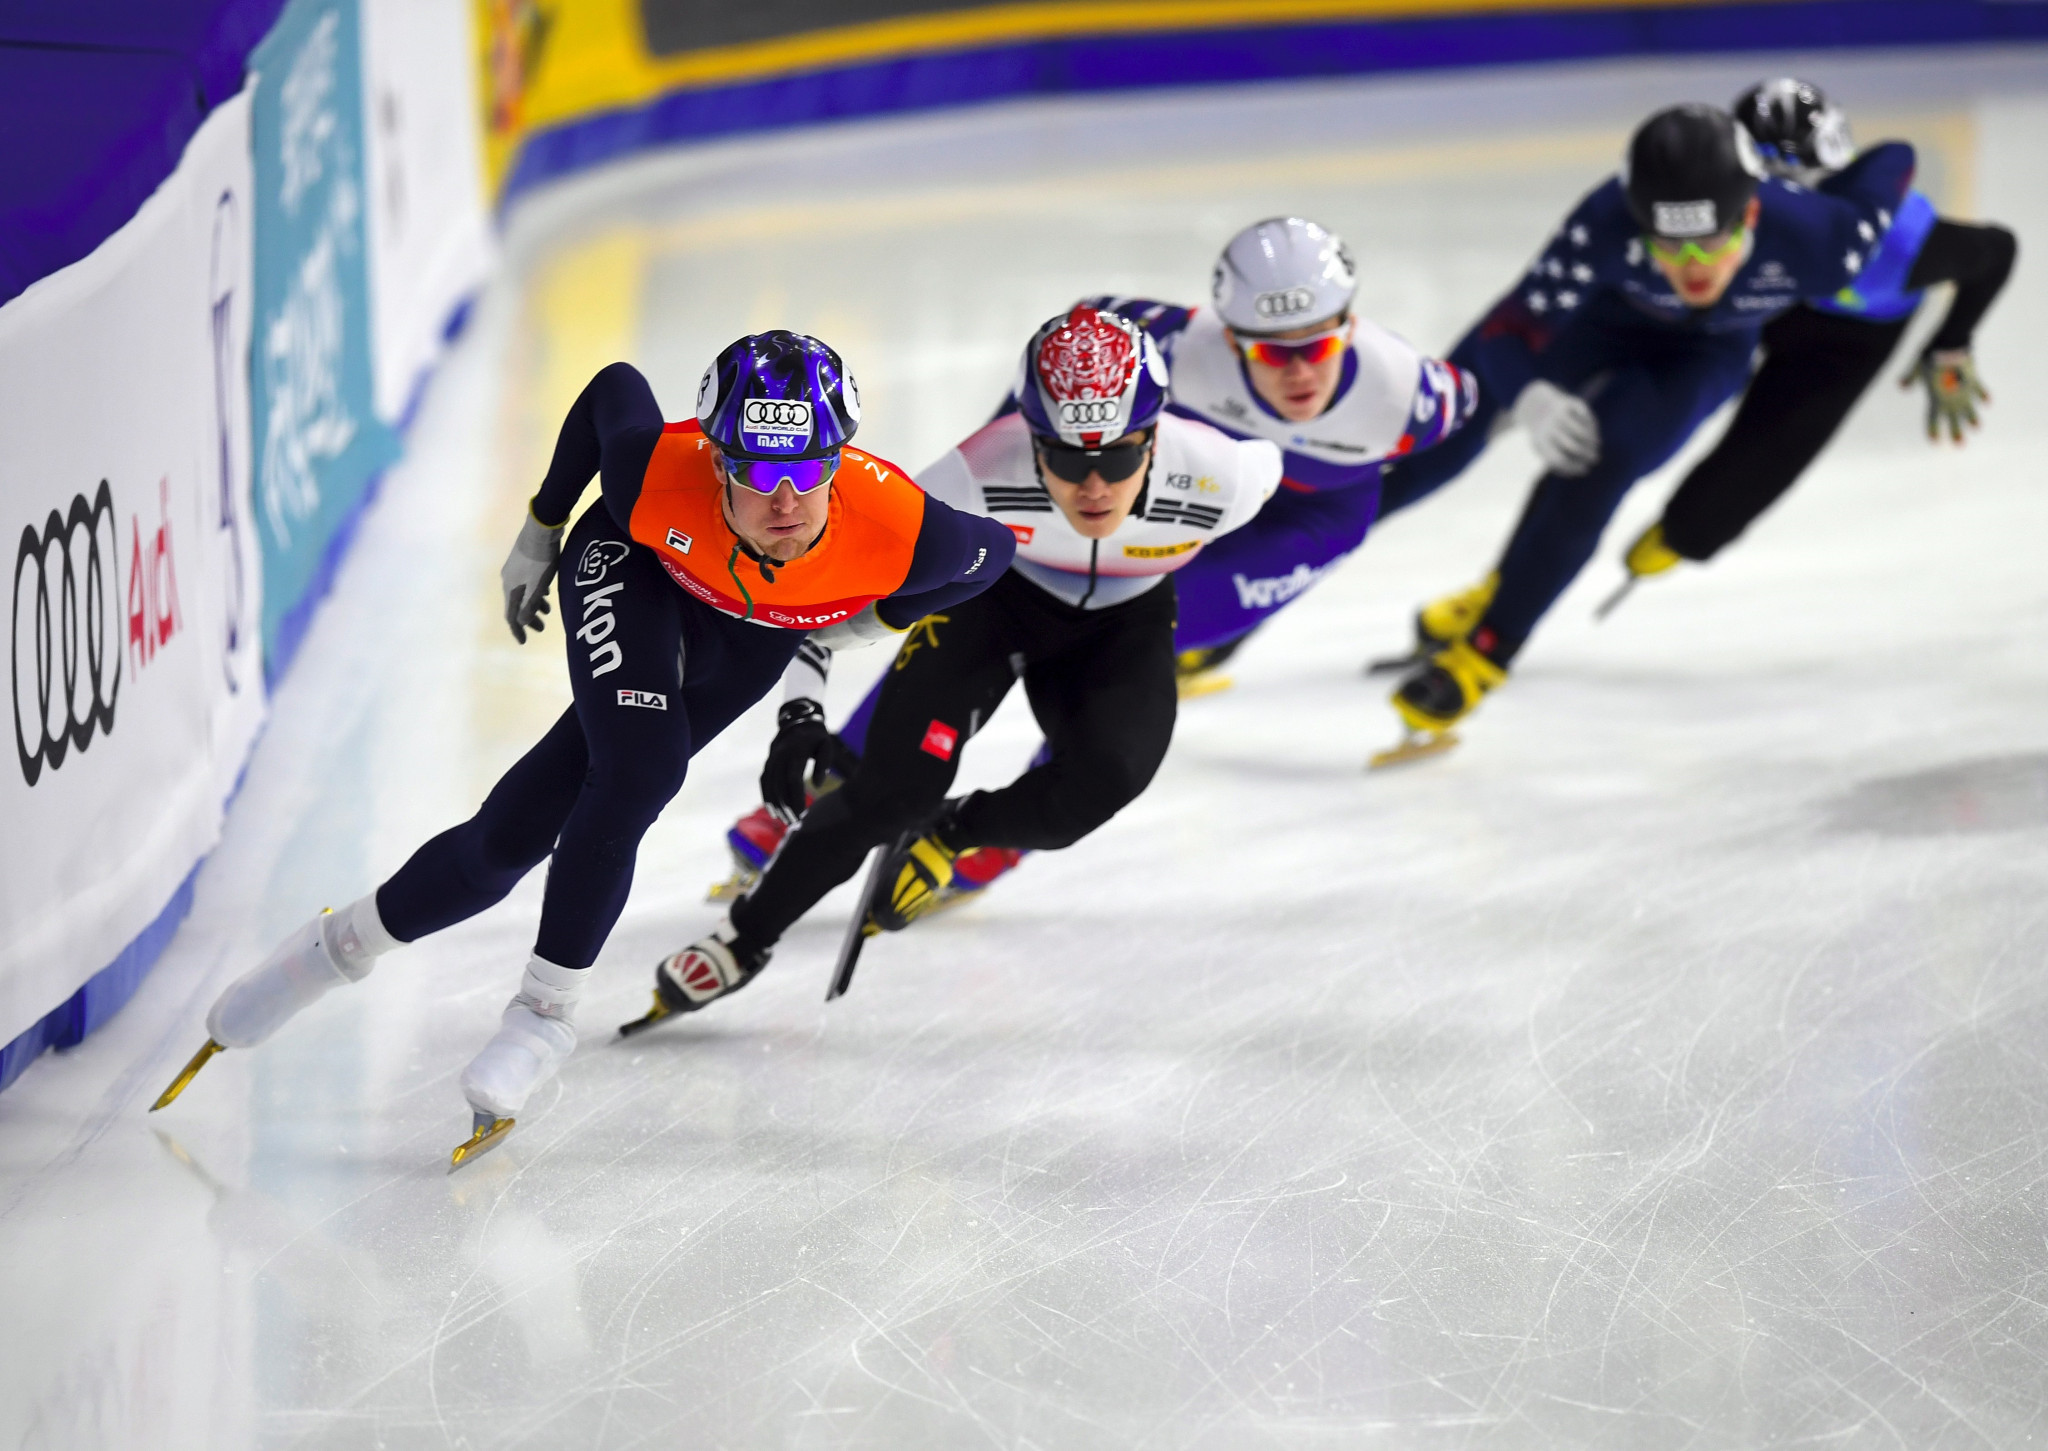 Russia targeting hosting Short Track World Cup after RUSADA reinstated by WADA